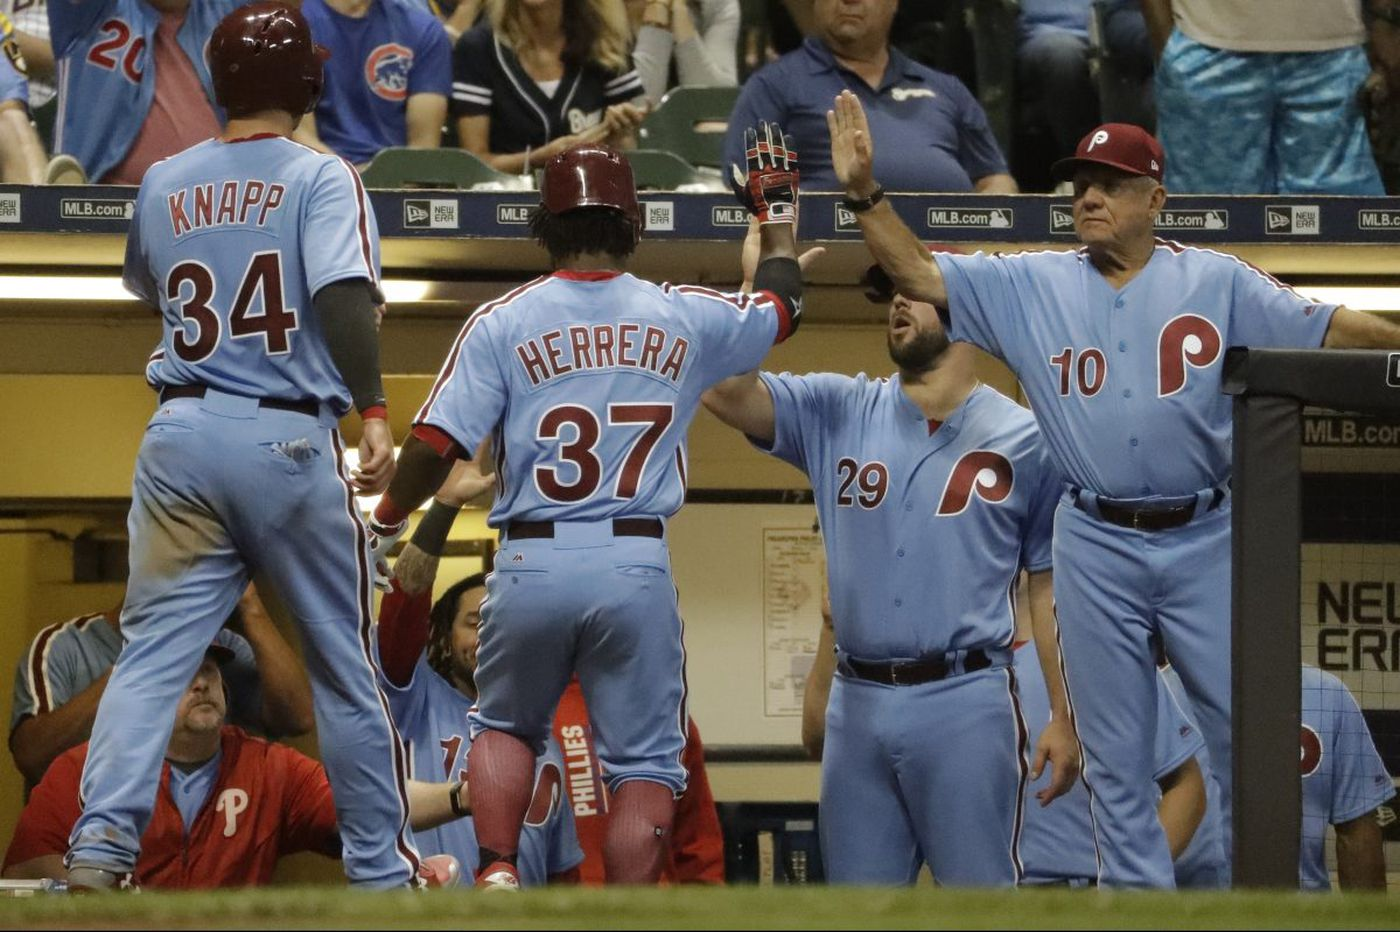 Phillies to wear powder blue uniforms at times this season 8b8424bc87a